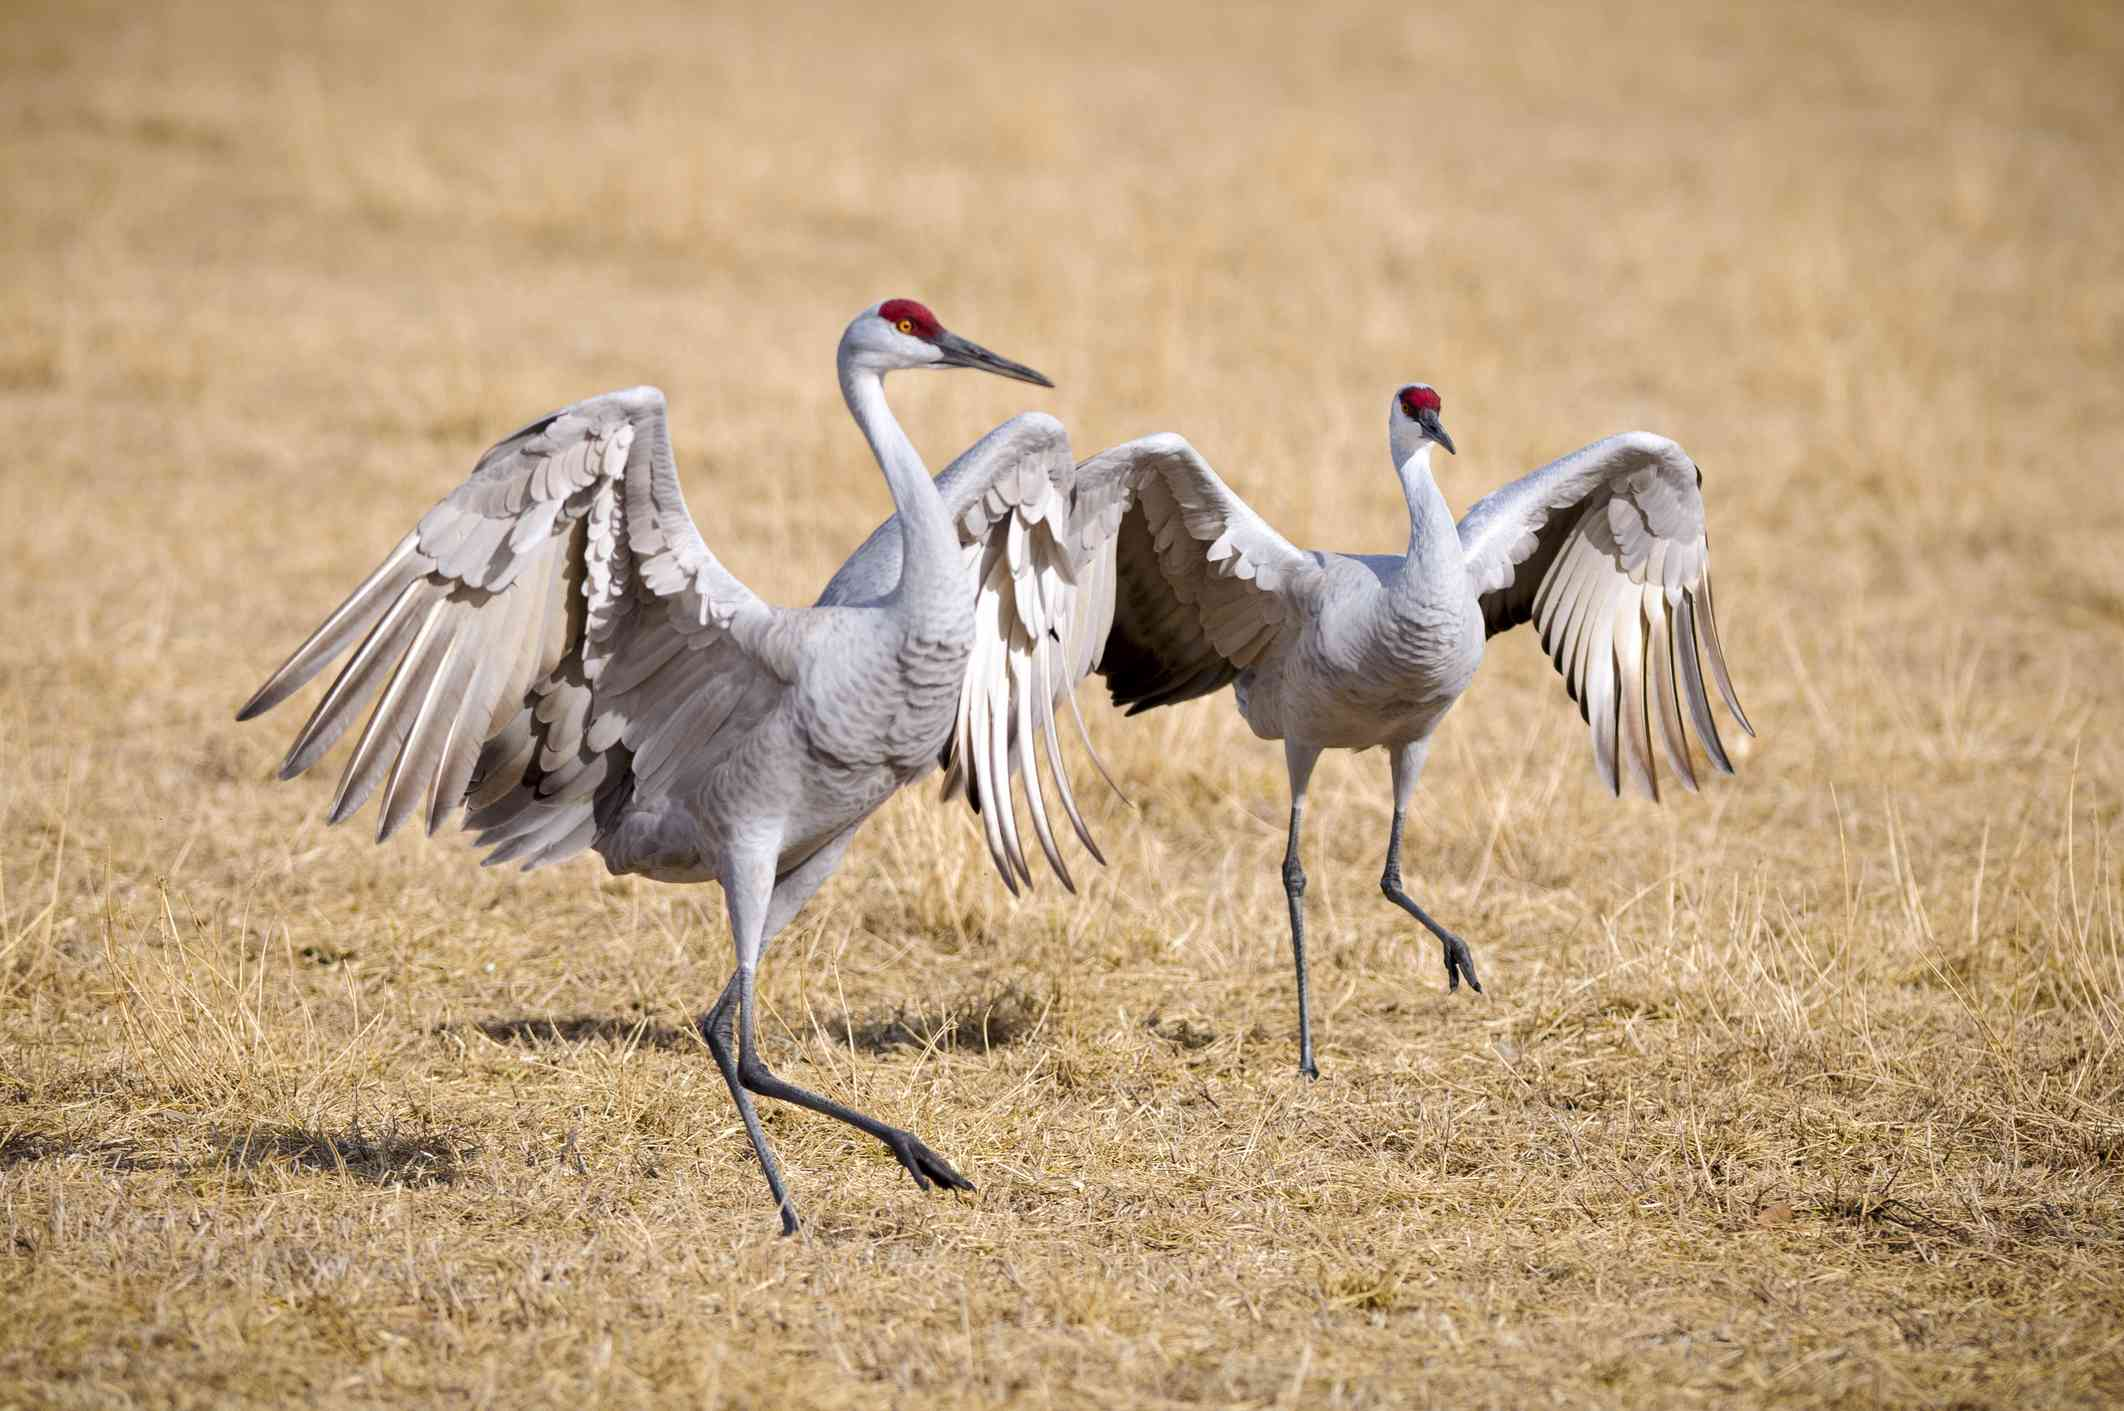 Pair of sandhill cranes standing with their wings outstretched in Bosque del Apache National Wildlife Refuge, New Mexico